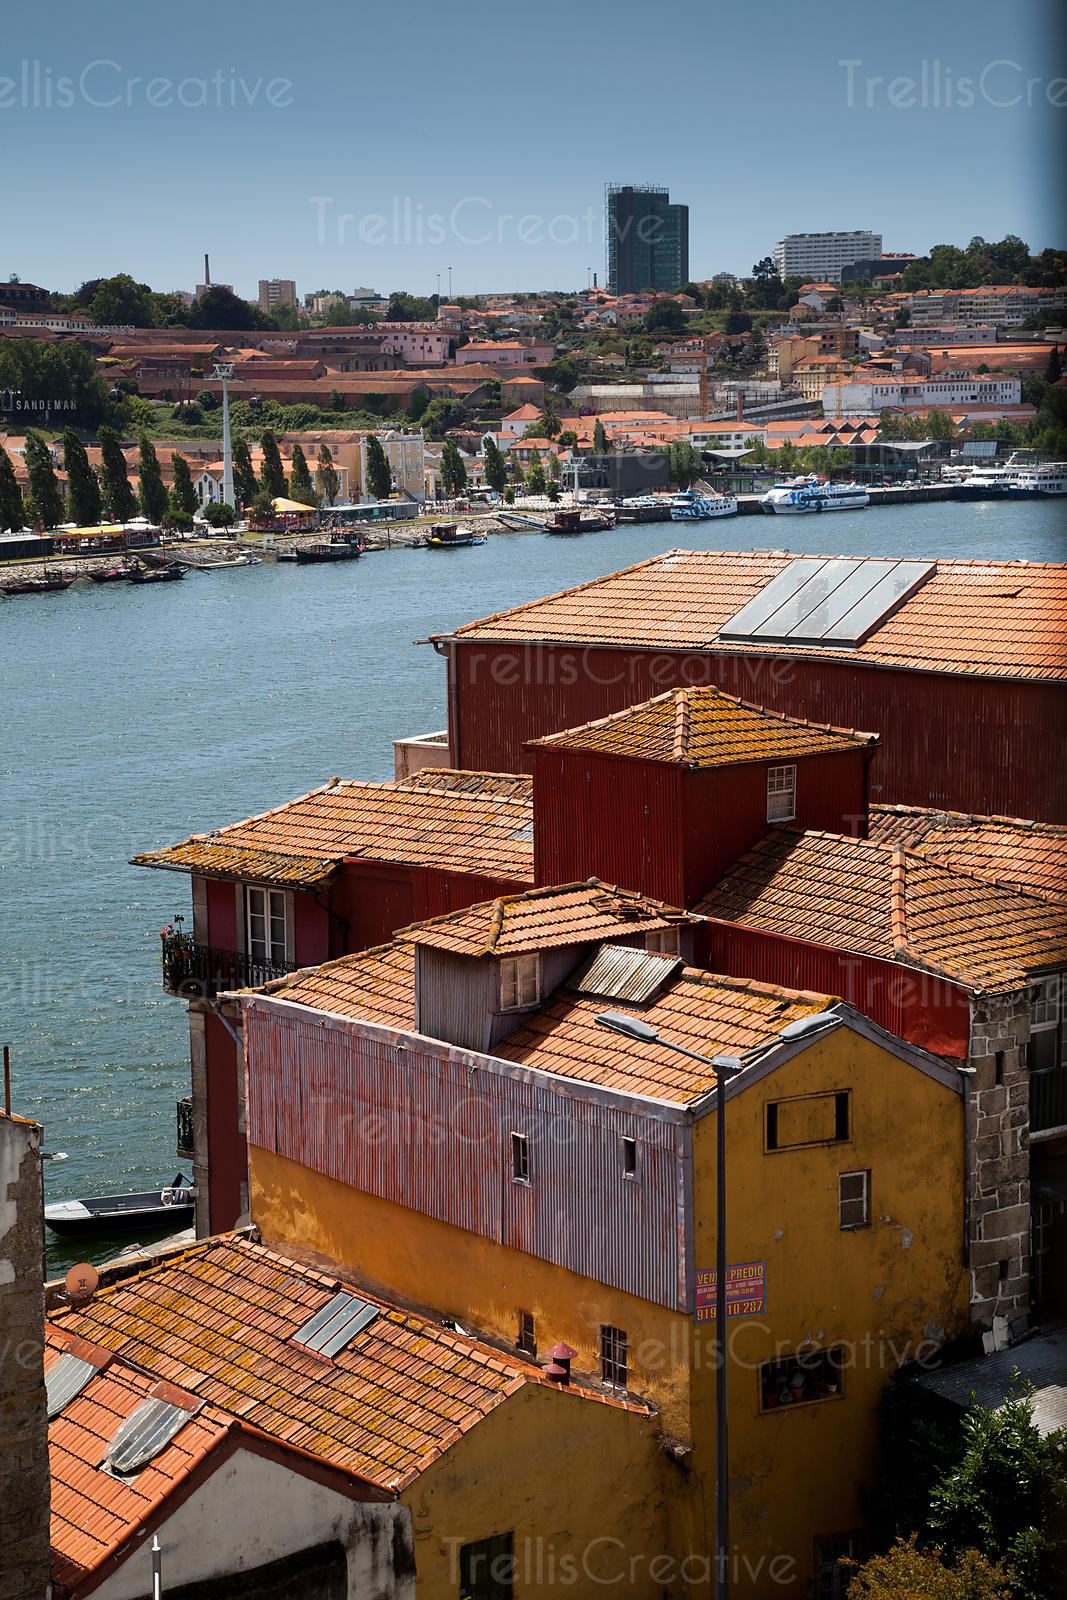 Old buildings line the Douro river in Porto, Portugal.